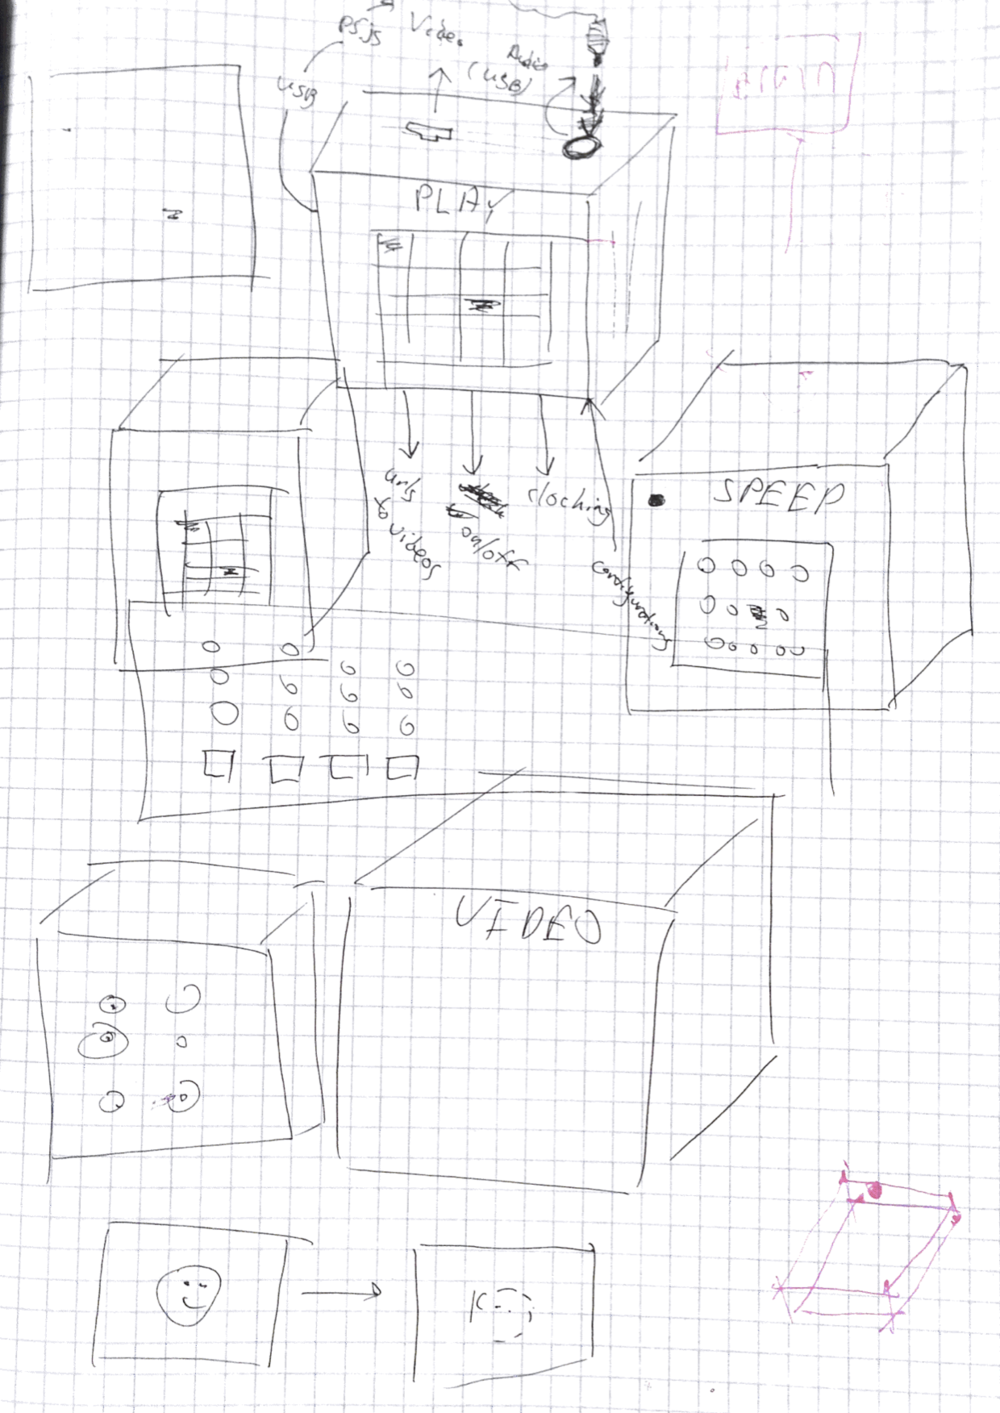 Sketches of the modular system for The Video Machine